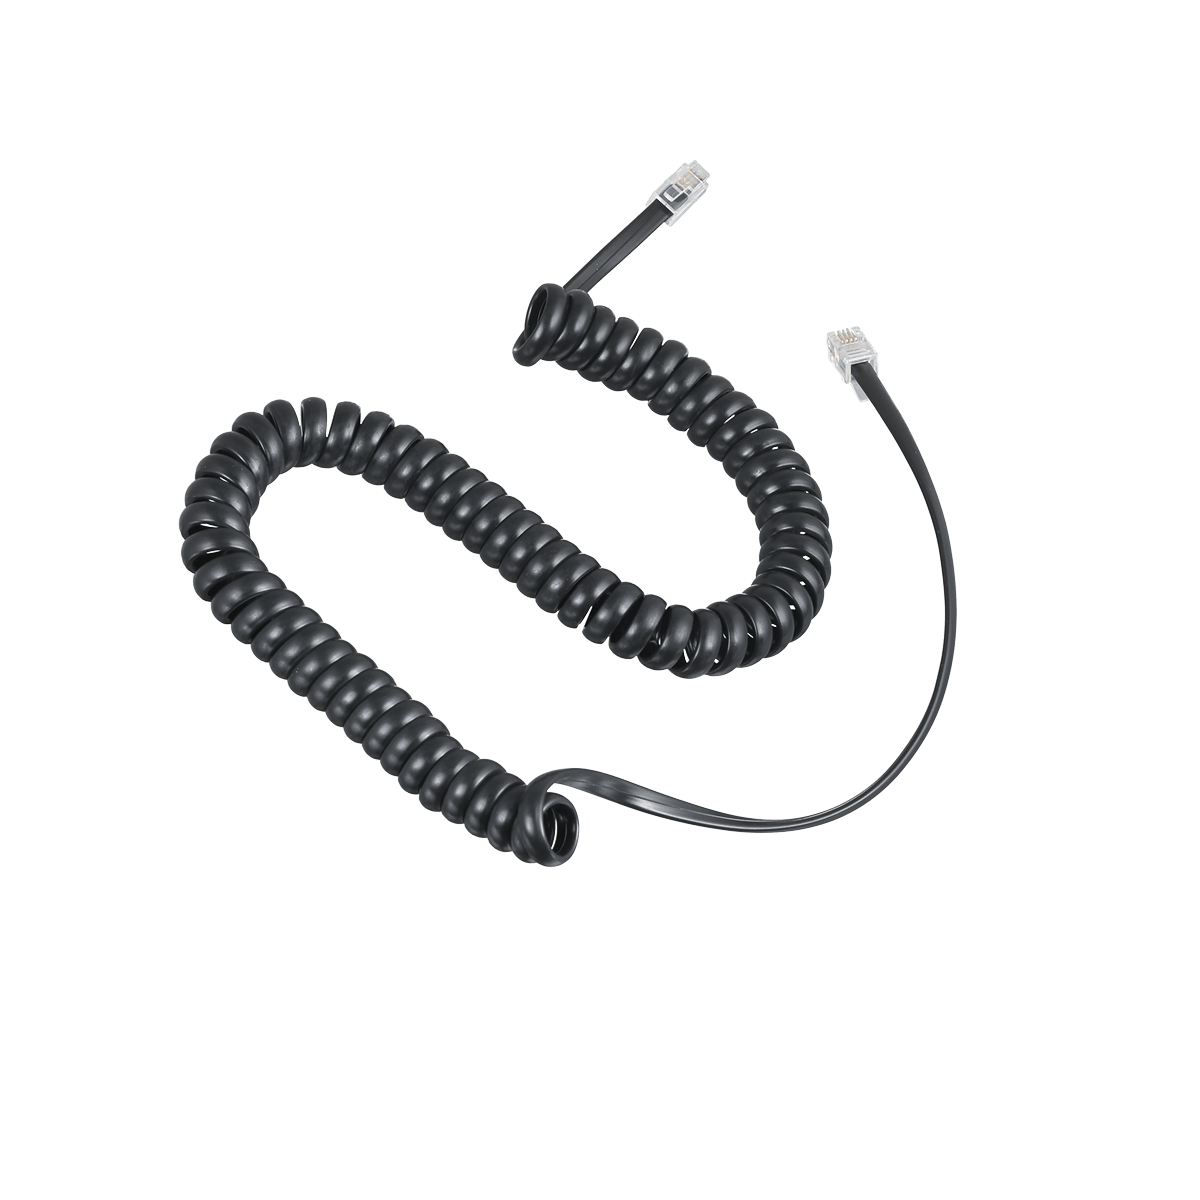 Coiled Cord For Comfortel Handset